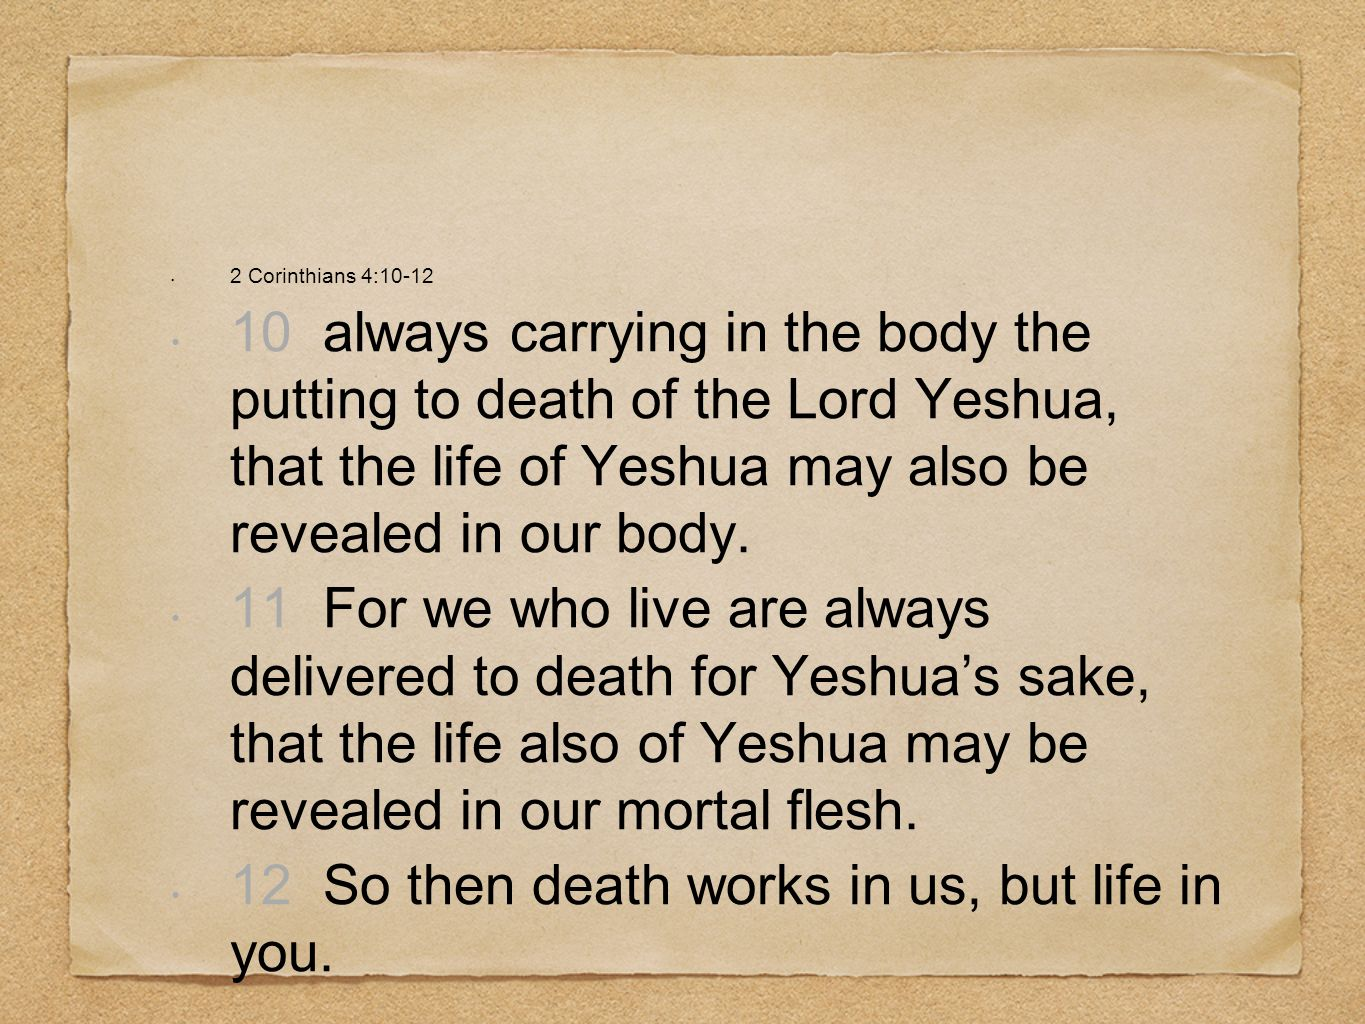 12 So then death works in us, but life in you.